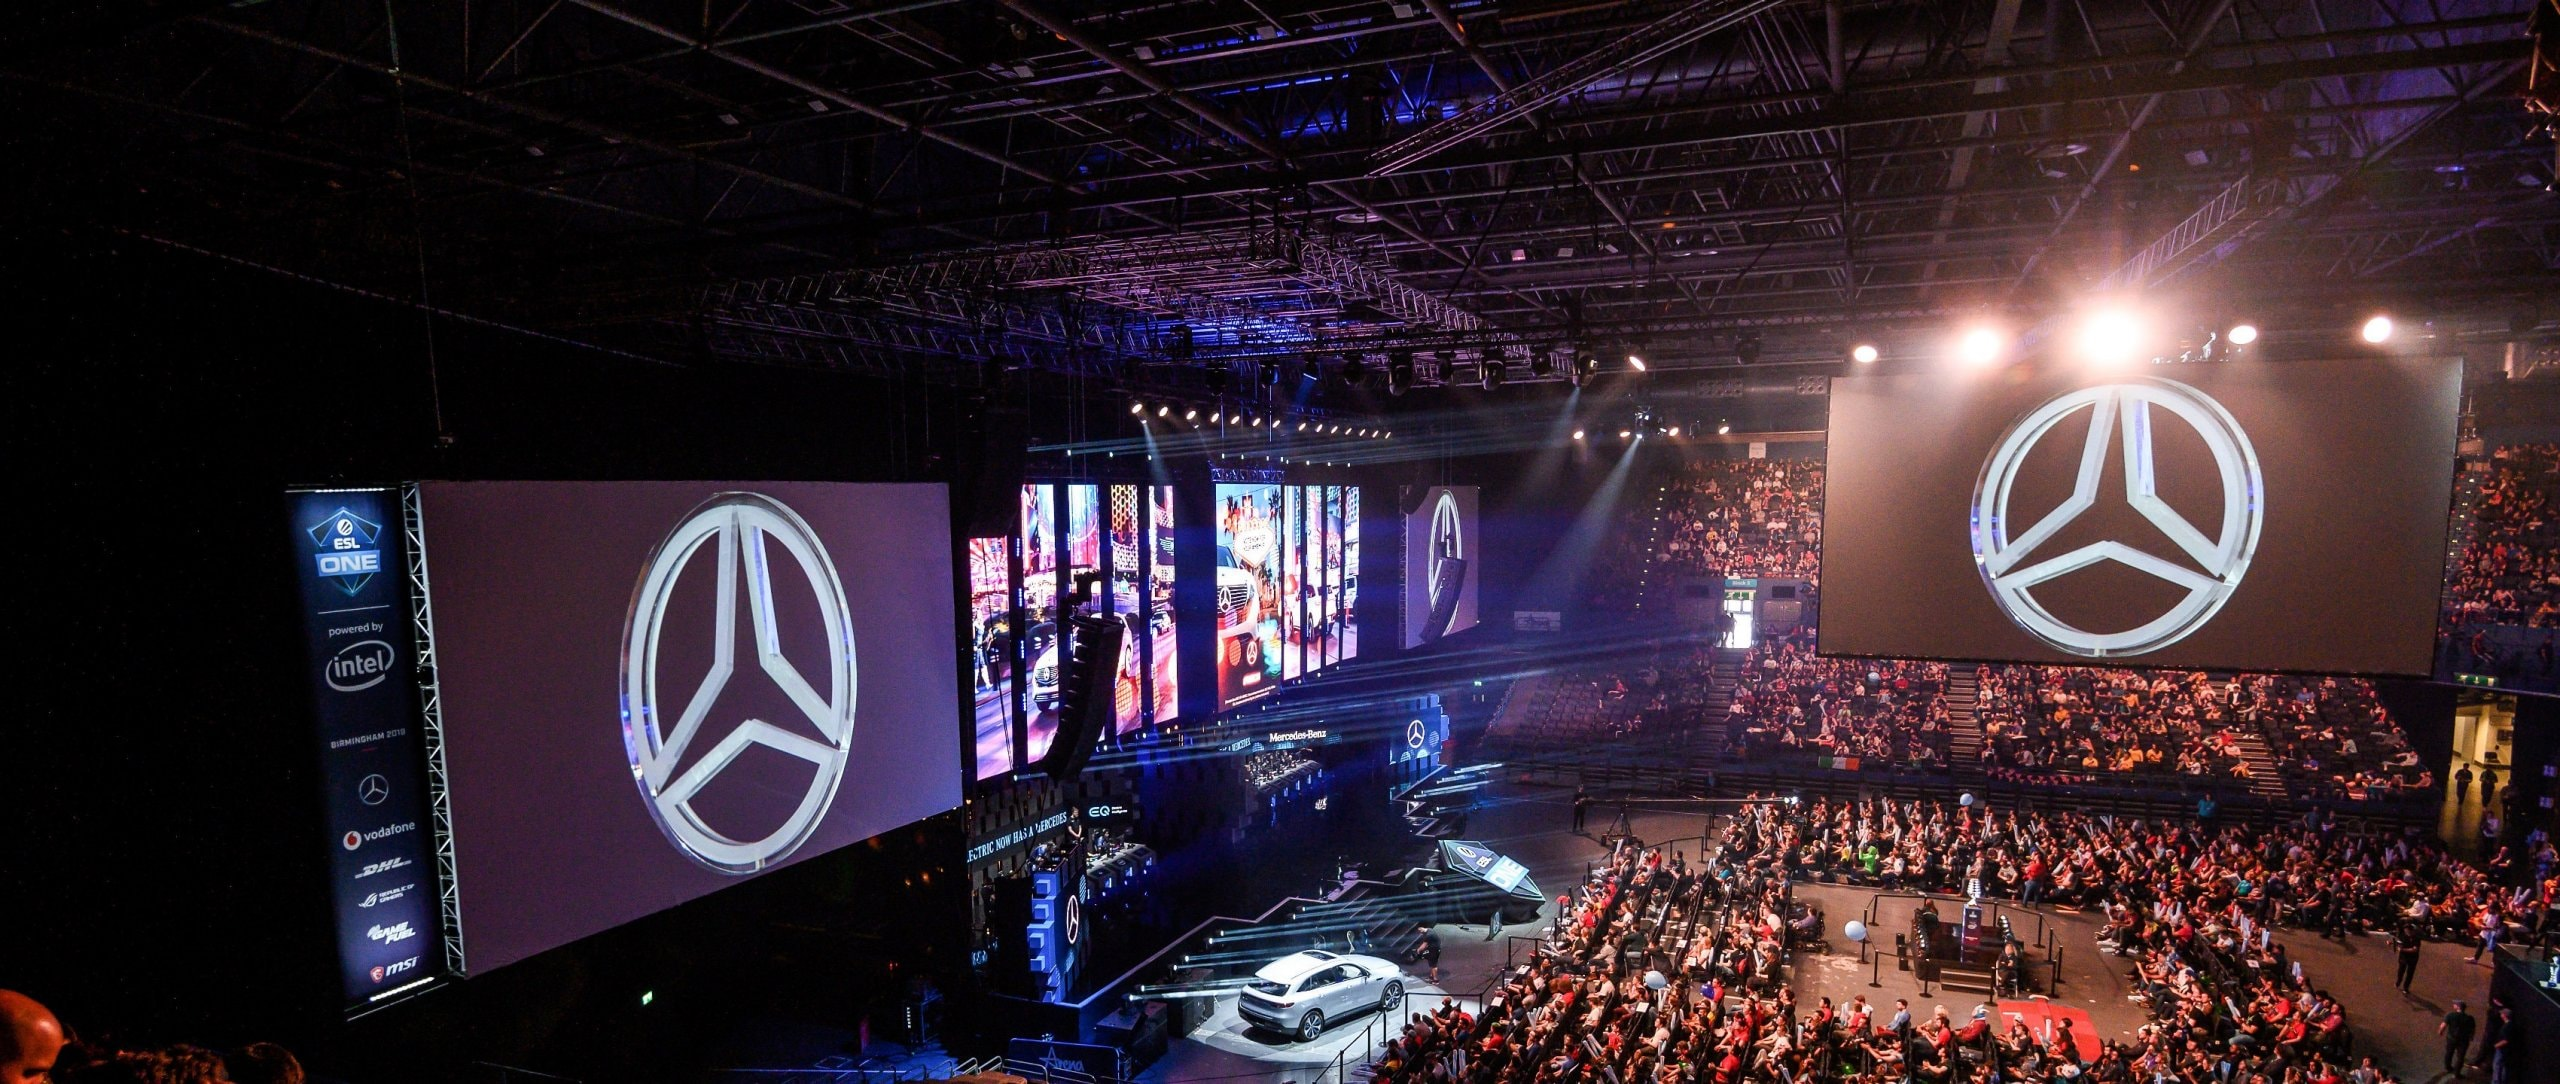 Overview of the ESL One in Birmingham.